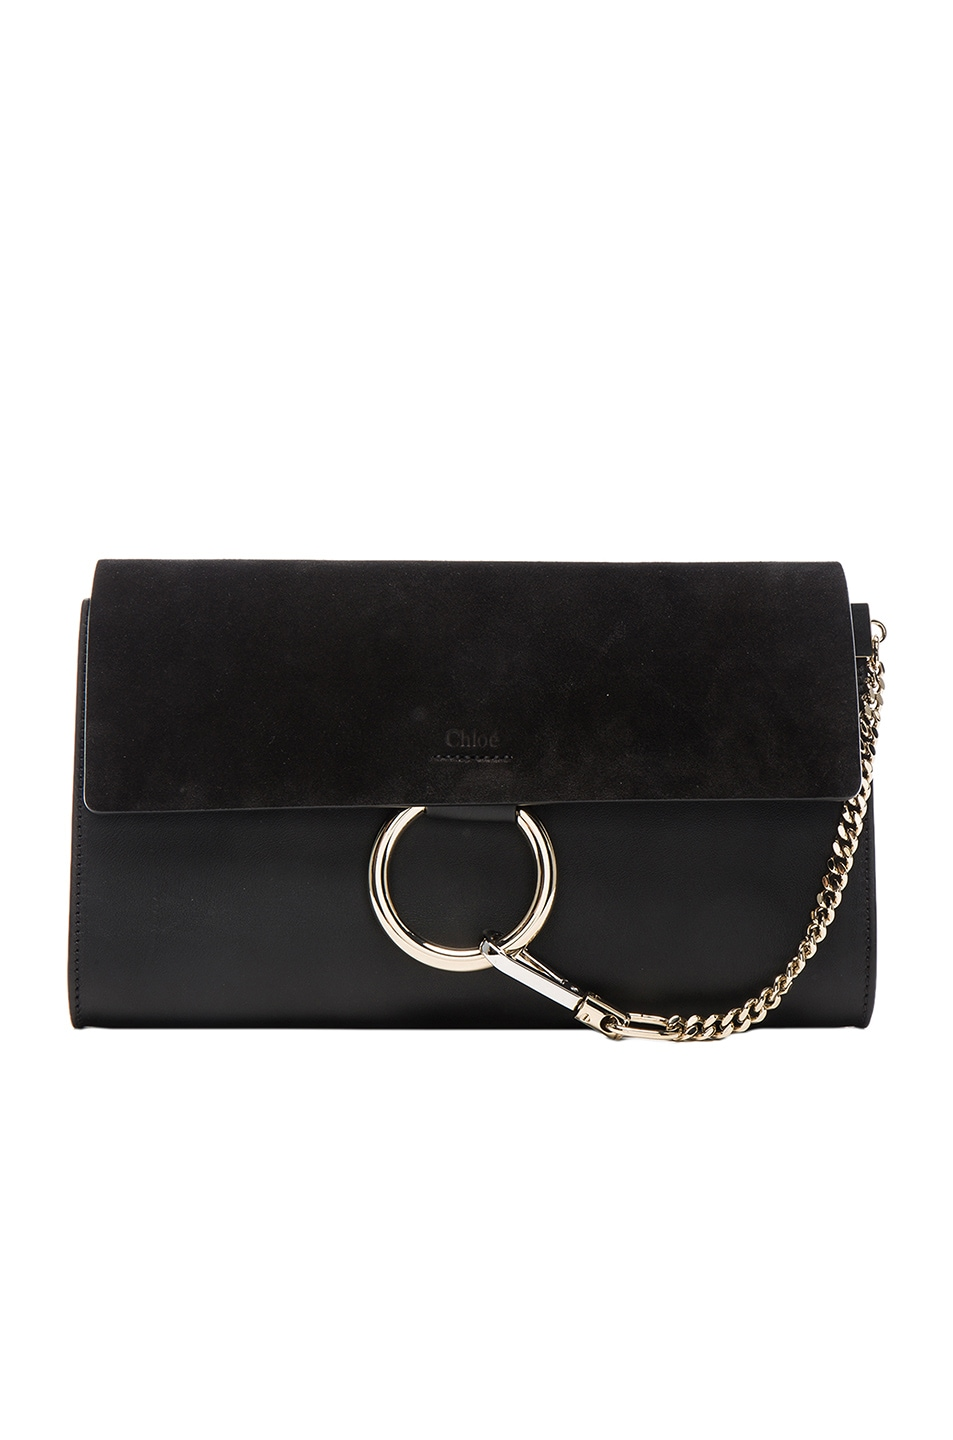 Image 1 of Chloe Faye Clutch in Black